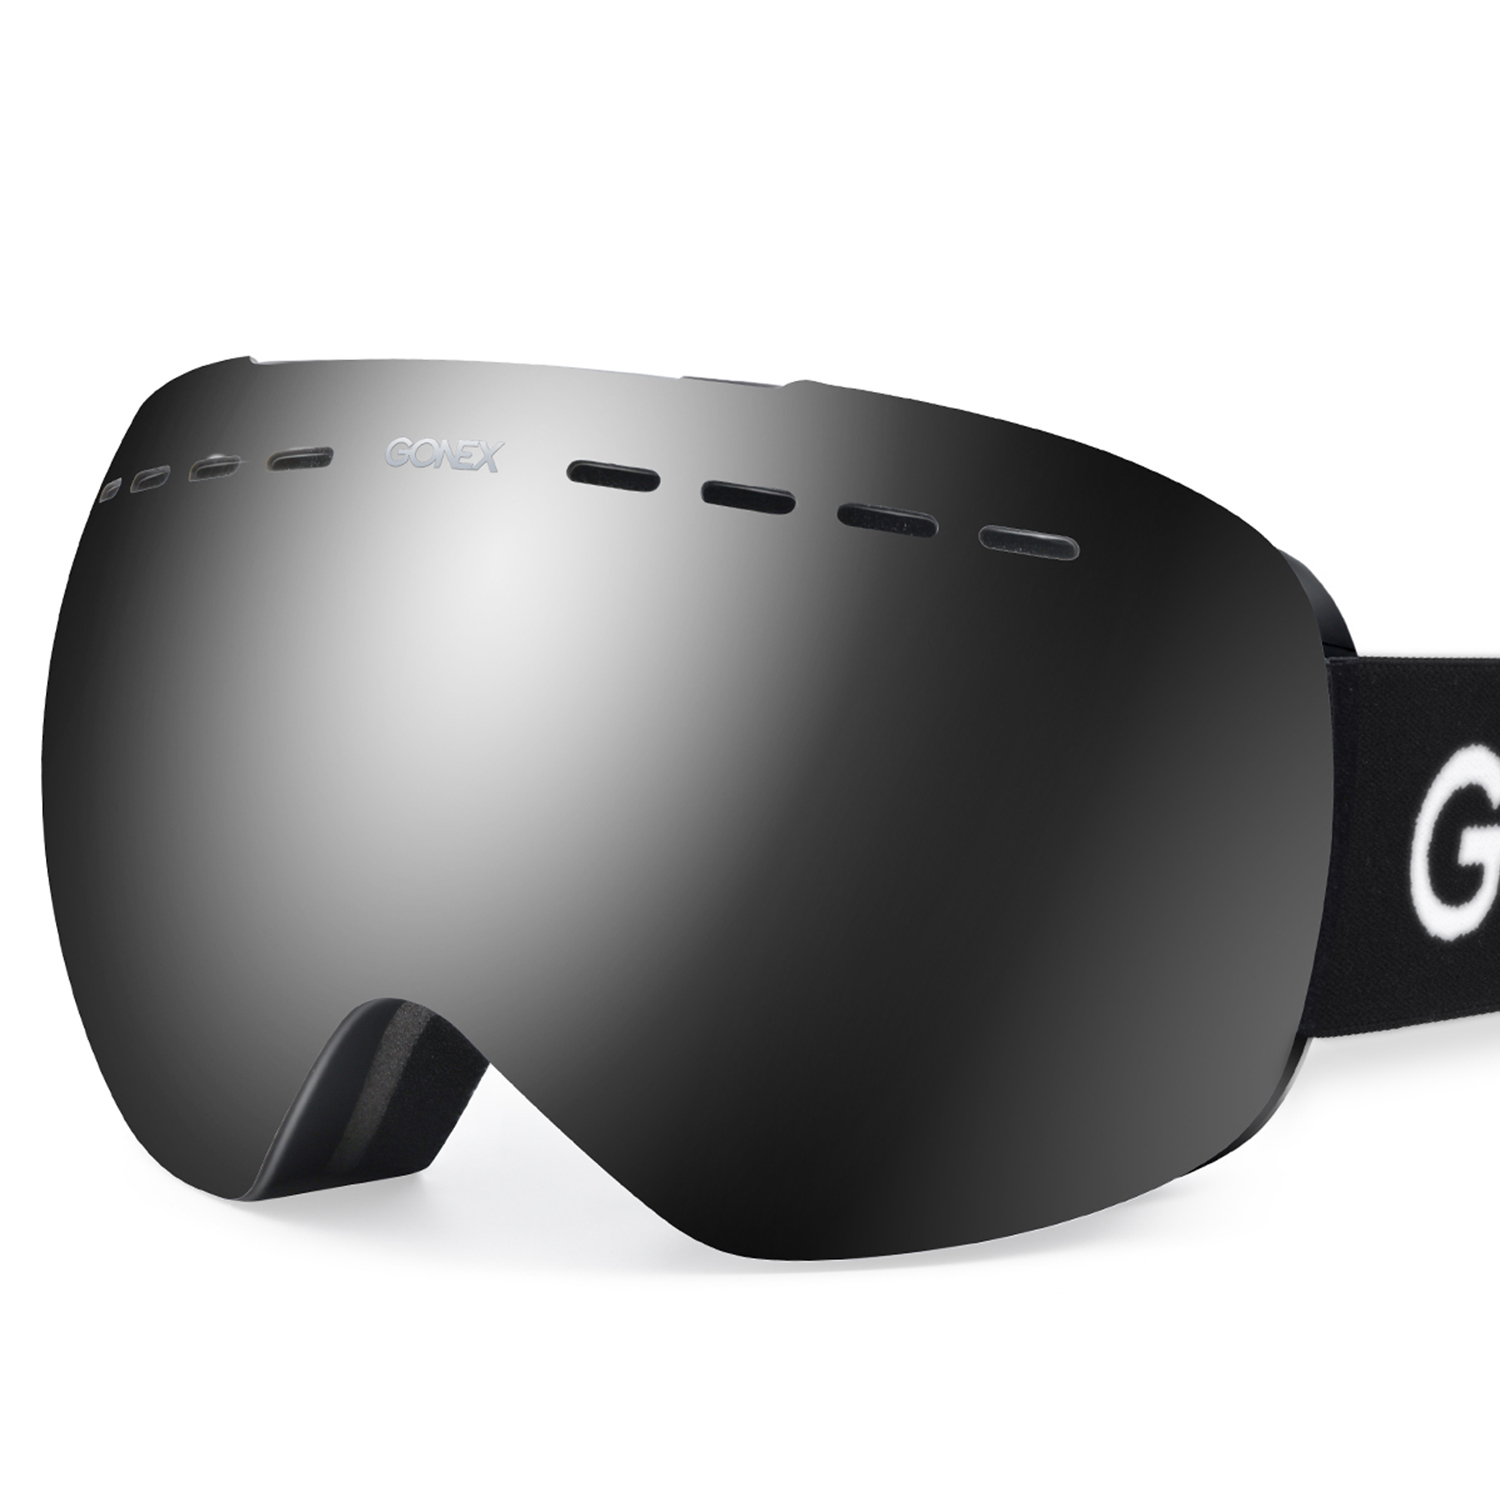 Gonex Ski Goggles OTG Anti-fog Windproof UV Protection Snowboard Goggles with Double Spherical Lens for Skiing by Gonex